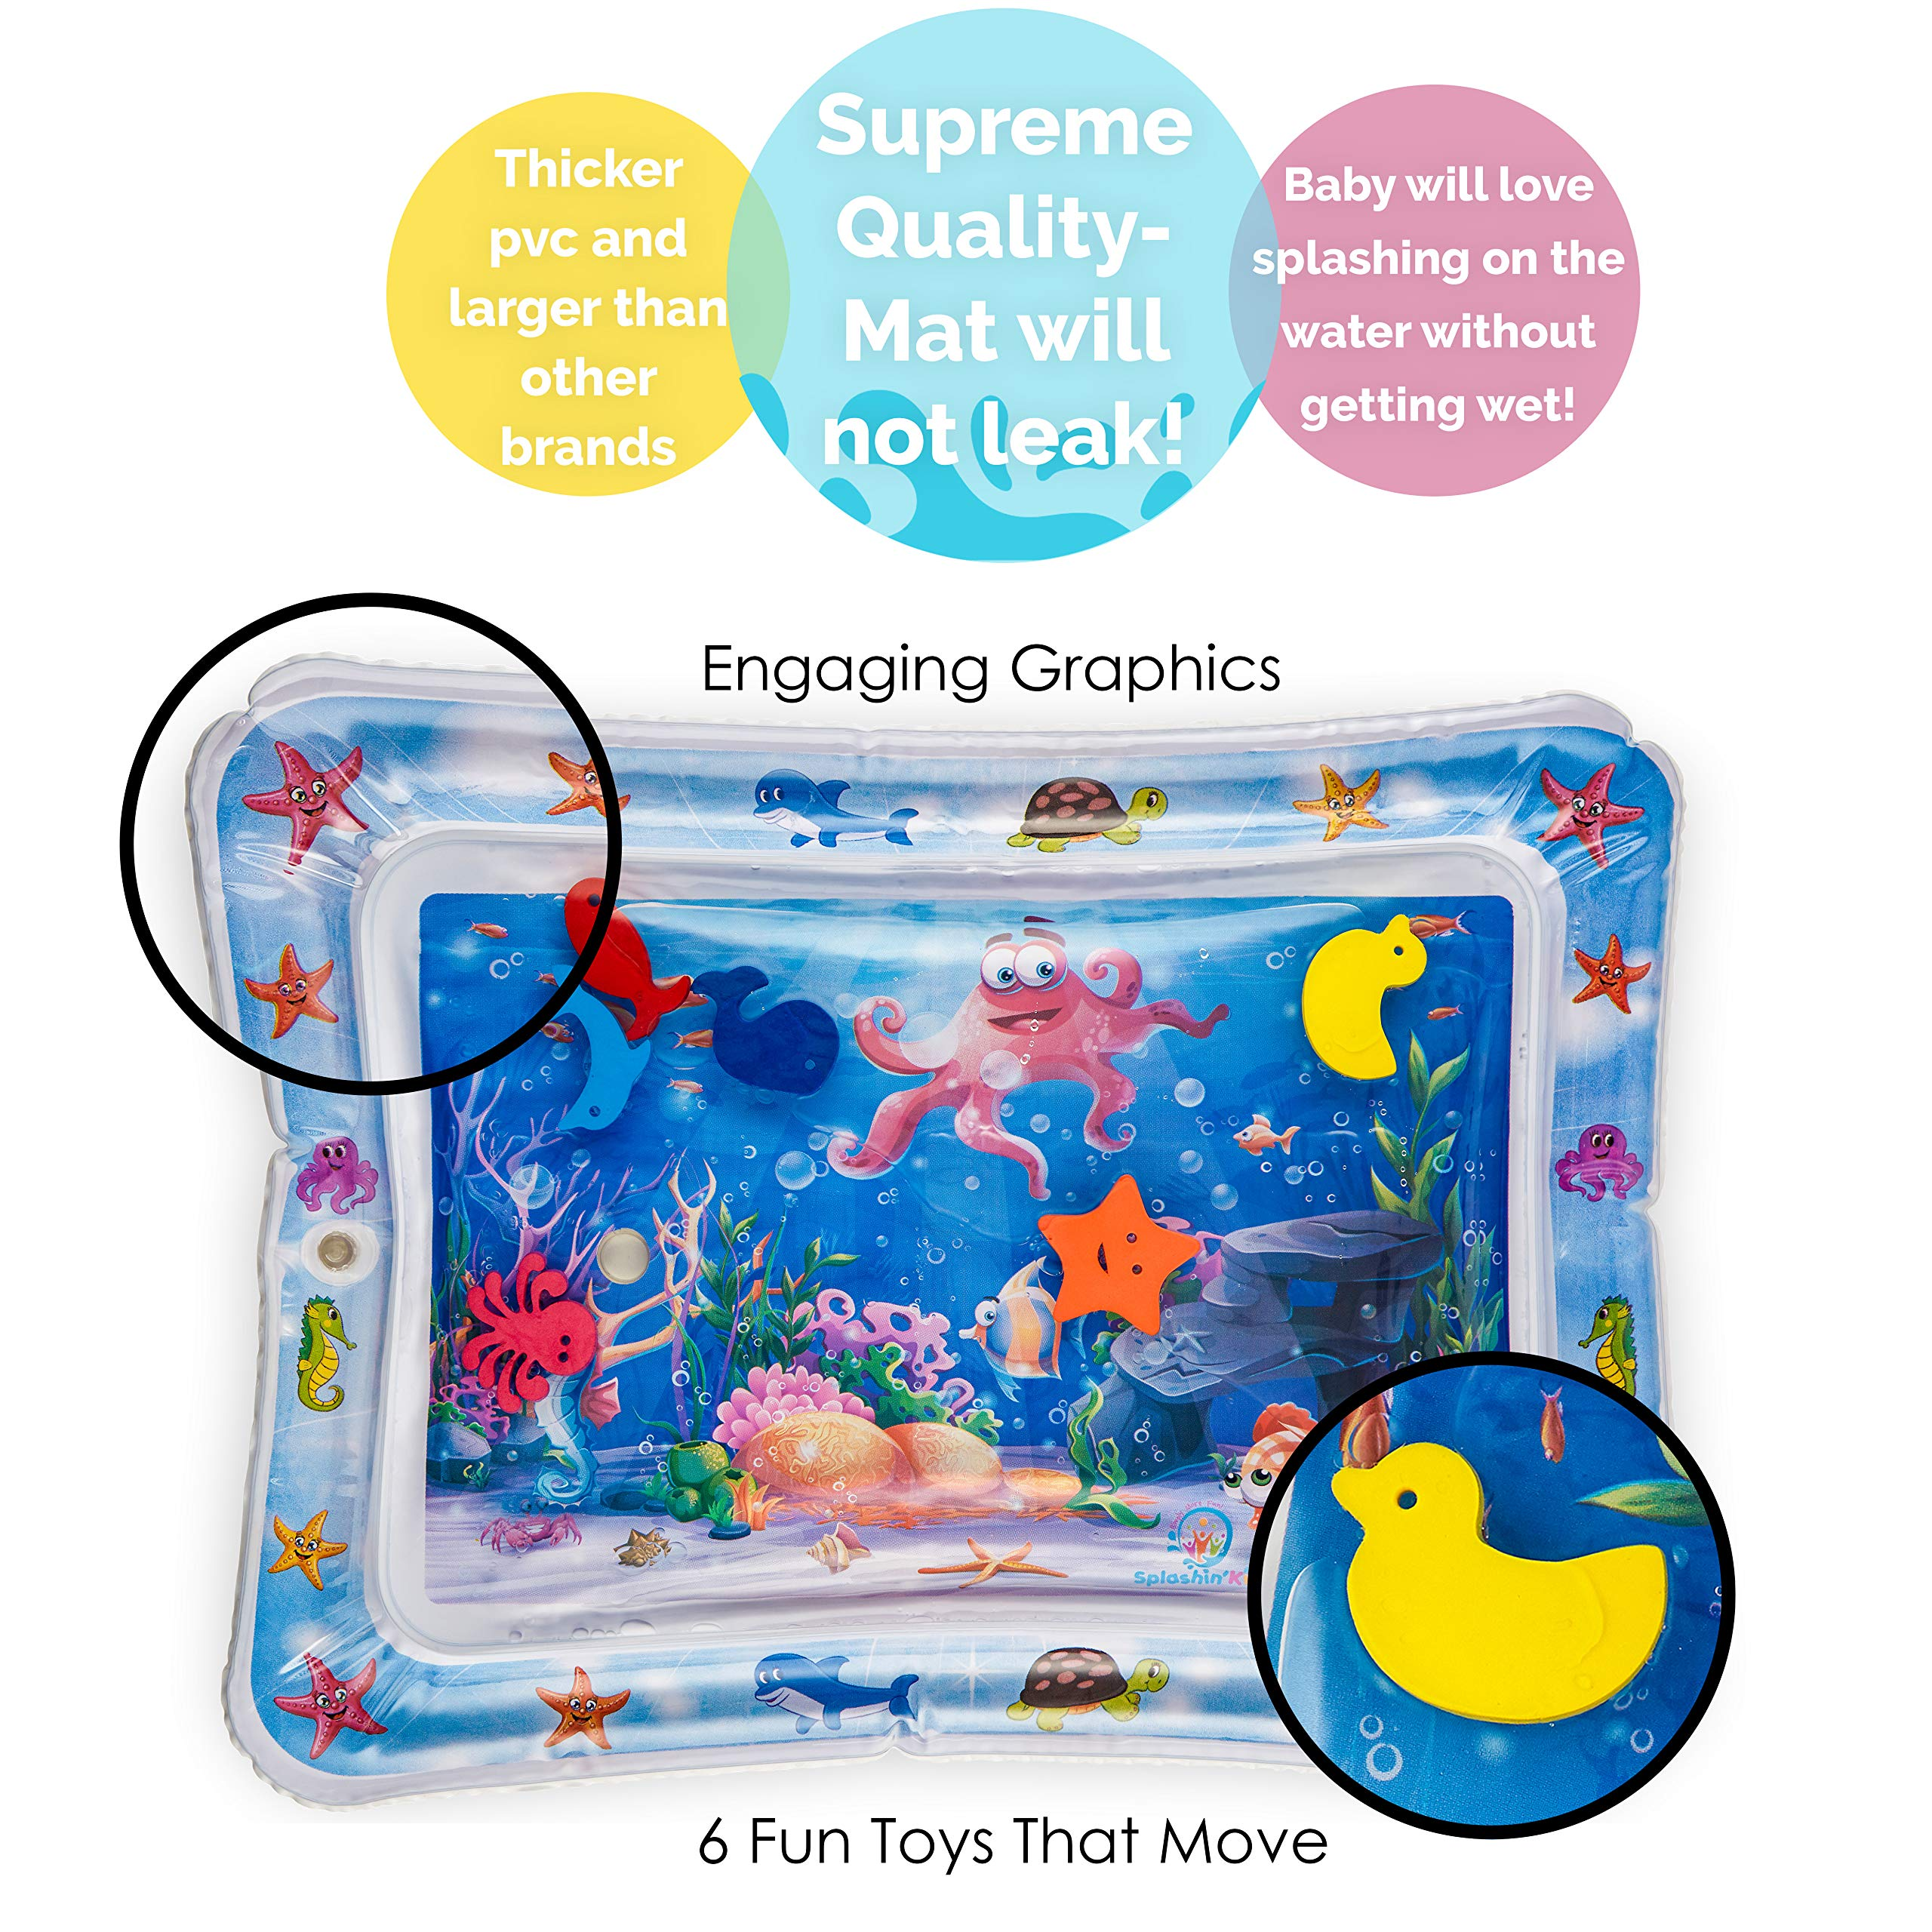 Splashin'kids Inflatable Tummy Time Premium Water mat for Infants & Toddlers is The Perfect Fun time Play Activity Center for Your Baby's Stimulation and Growth by Splashin'kids (Image #2)